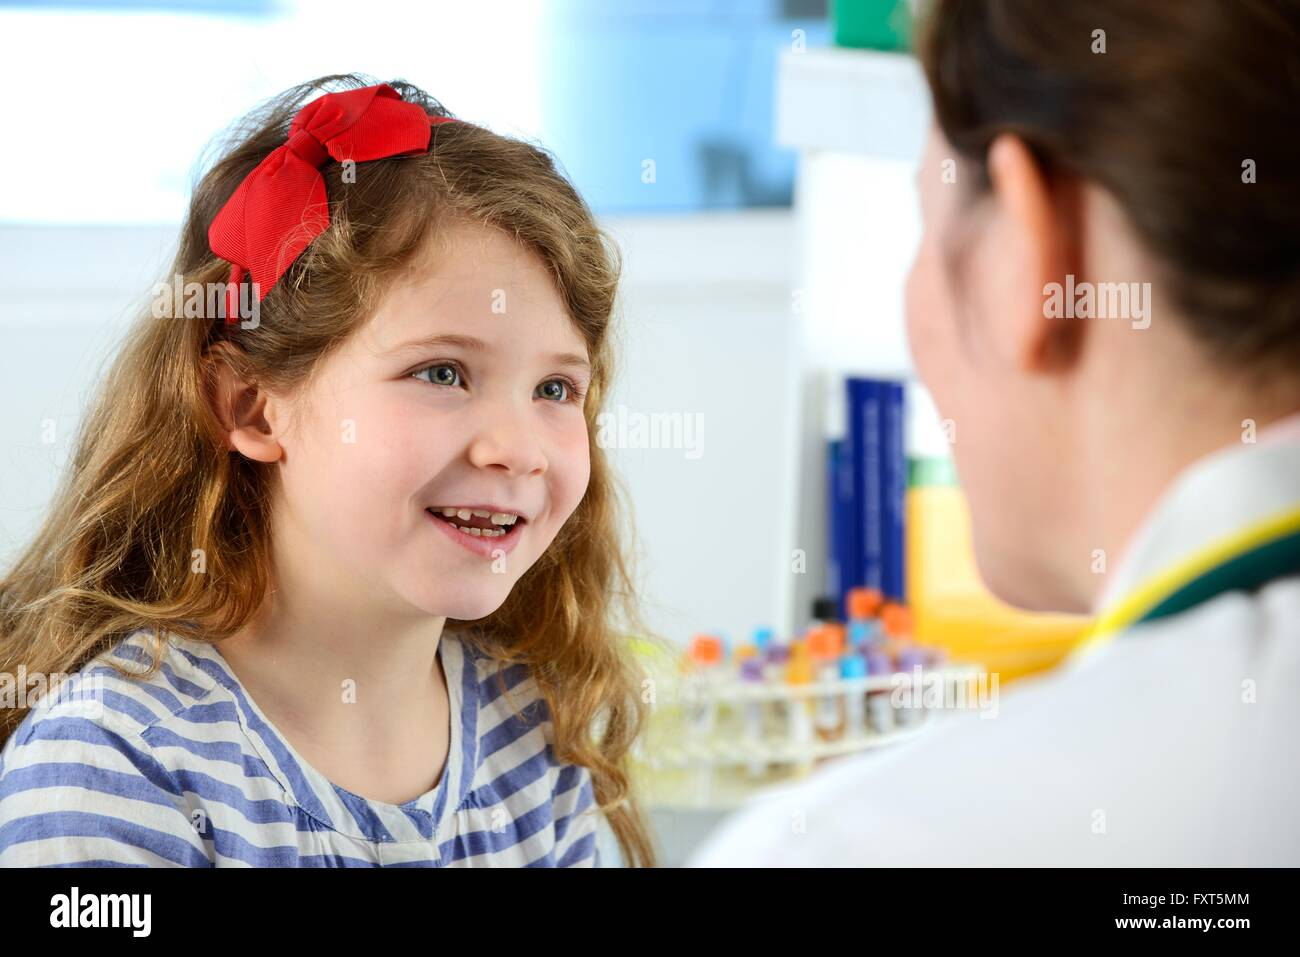 View over shoulder of girl consulting with doctor in clinic, smiling - Stock Image